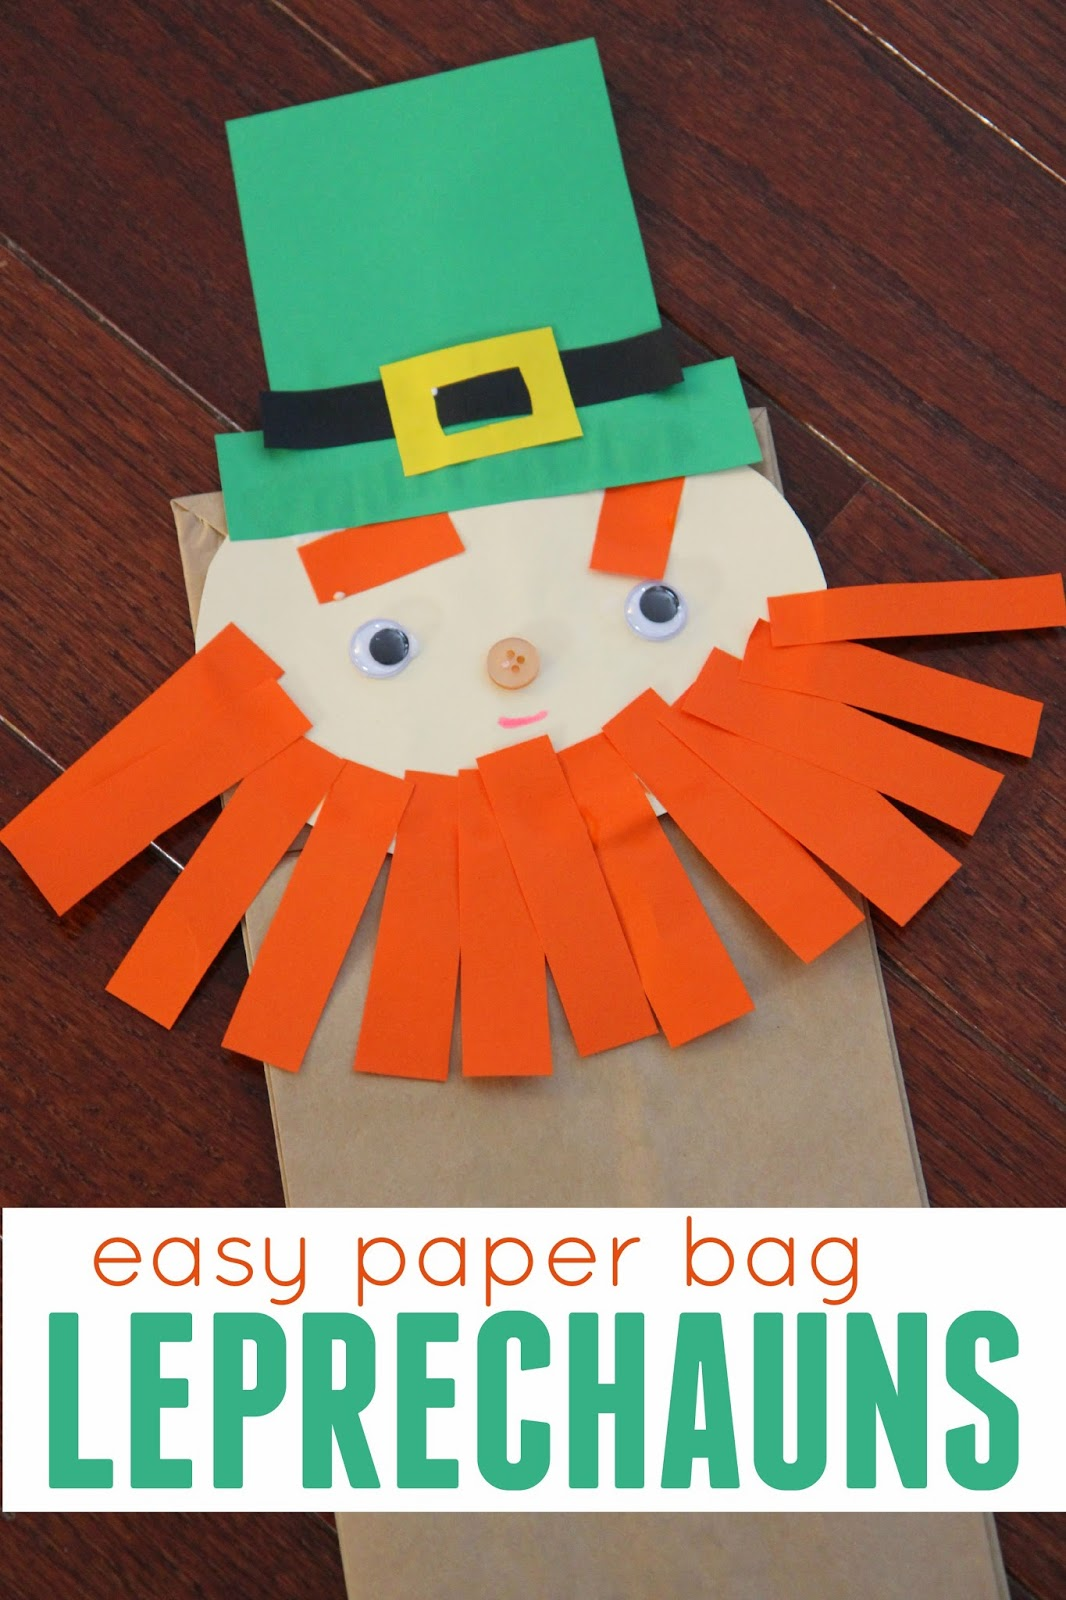 Toddler Approved!: 8 Easy St. Patrick's Day Crafts for Kids